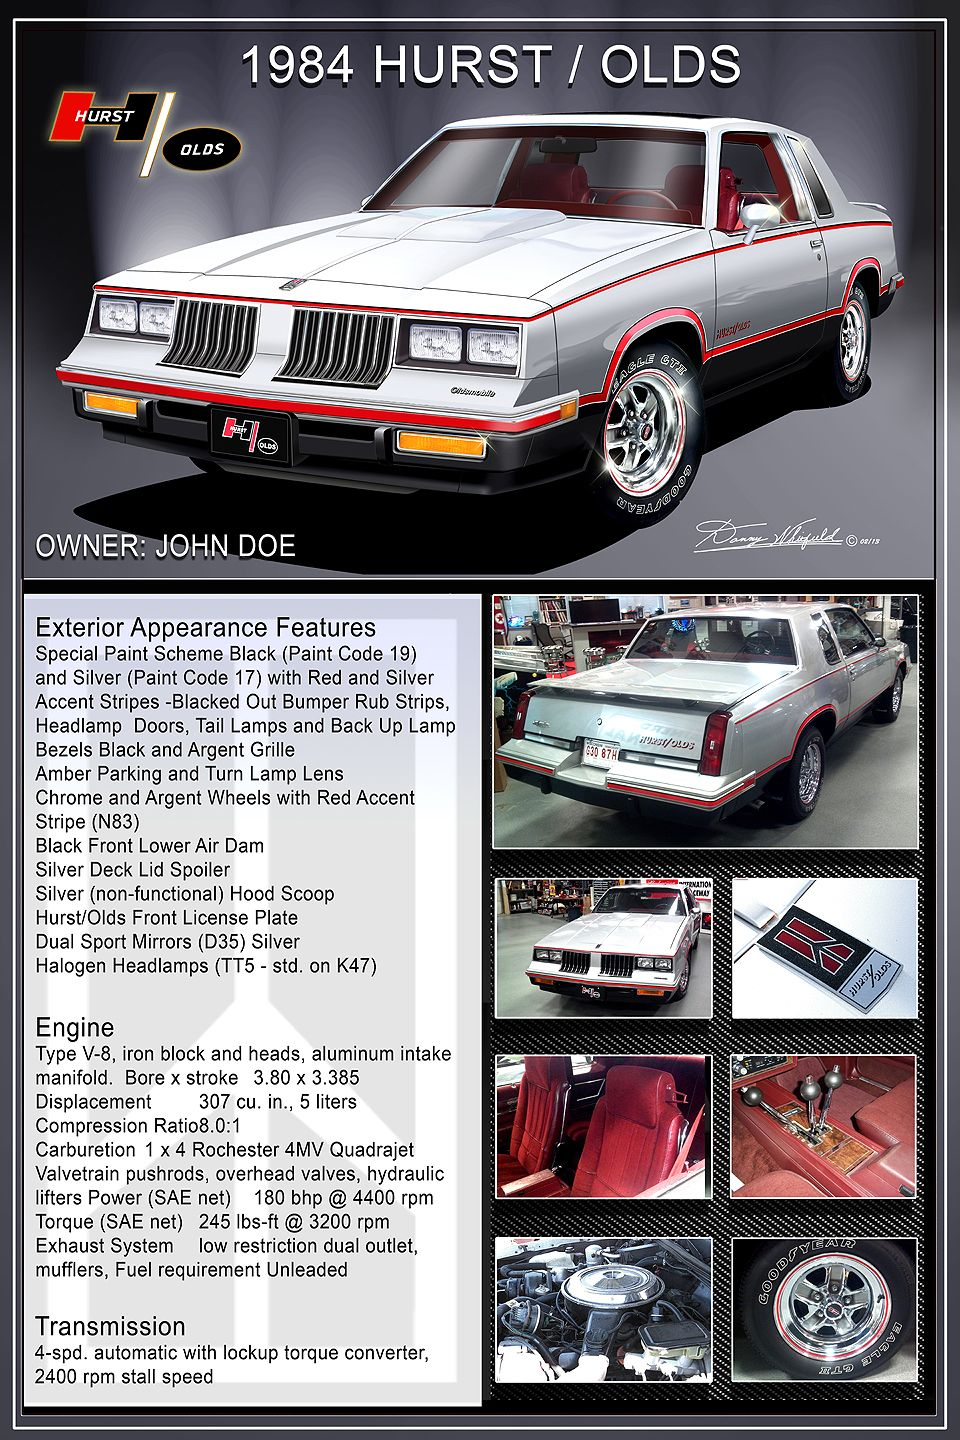 Hurst Olds Classic Cars Muscle Hurst Oldsmobile Muscle Car Ads